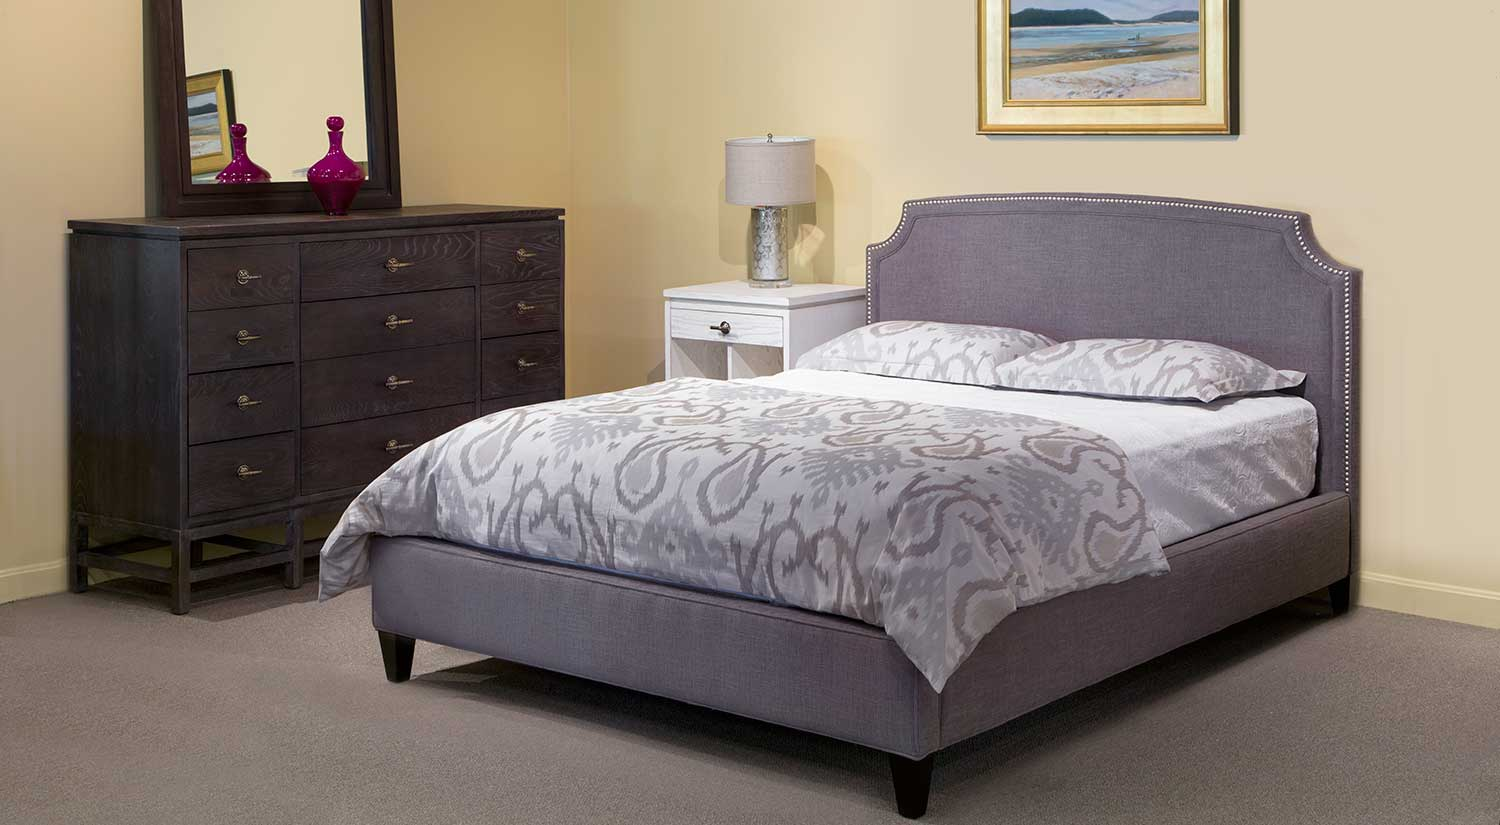 Circle Furniture  Upholstered Low Footboard Bed  Upholstered Beds Boston